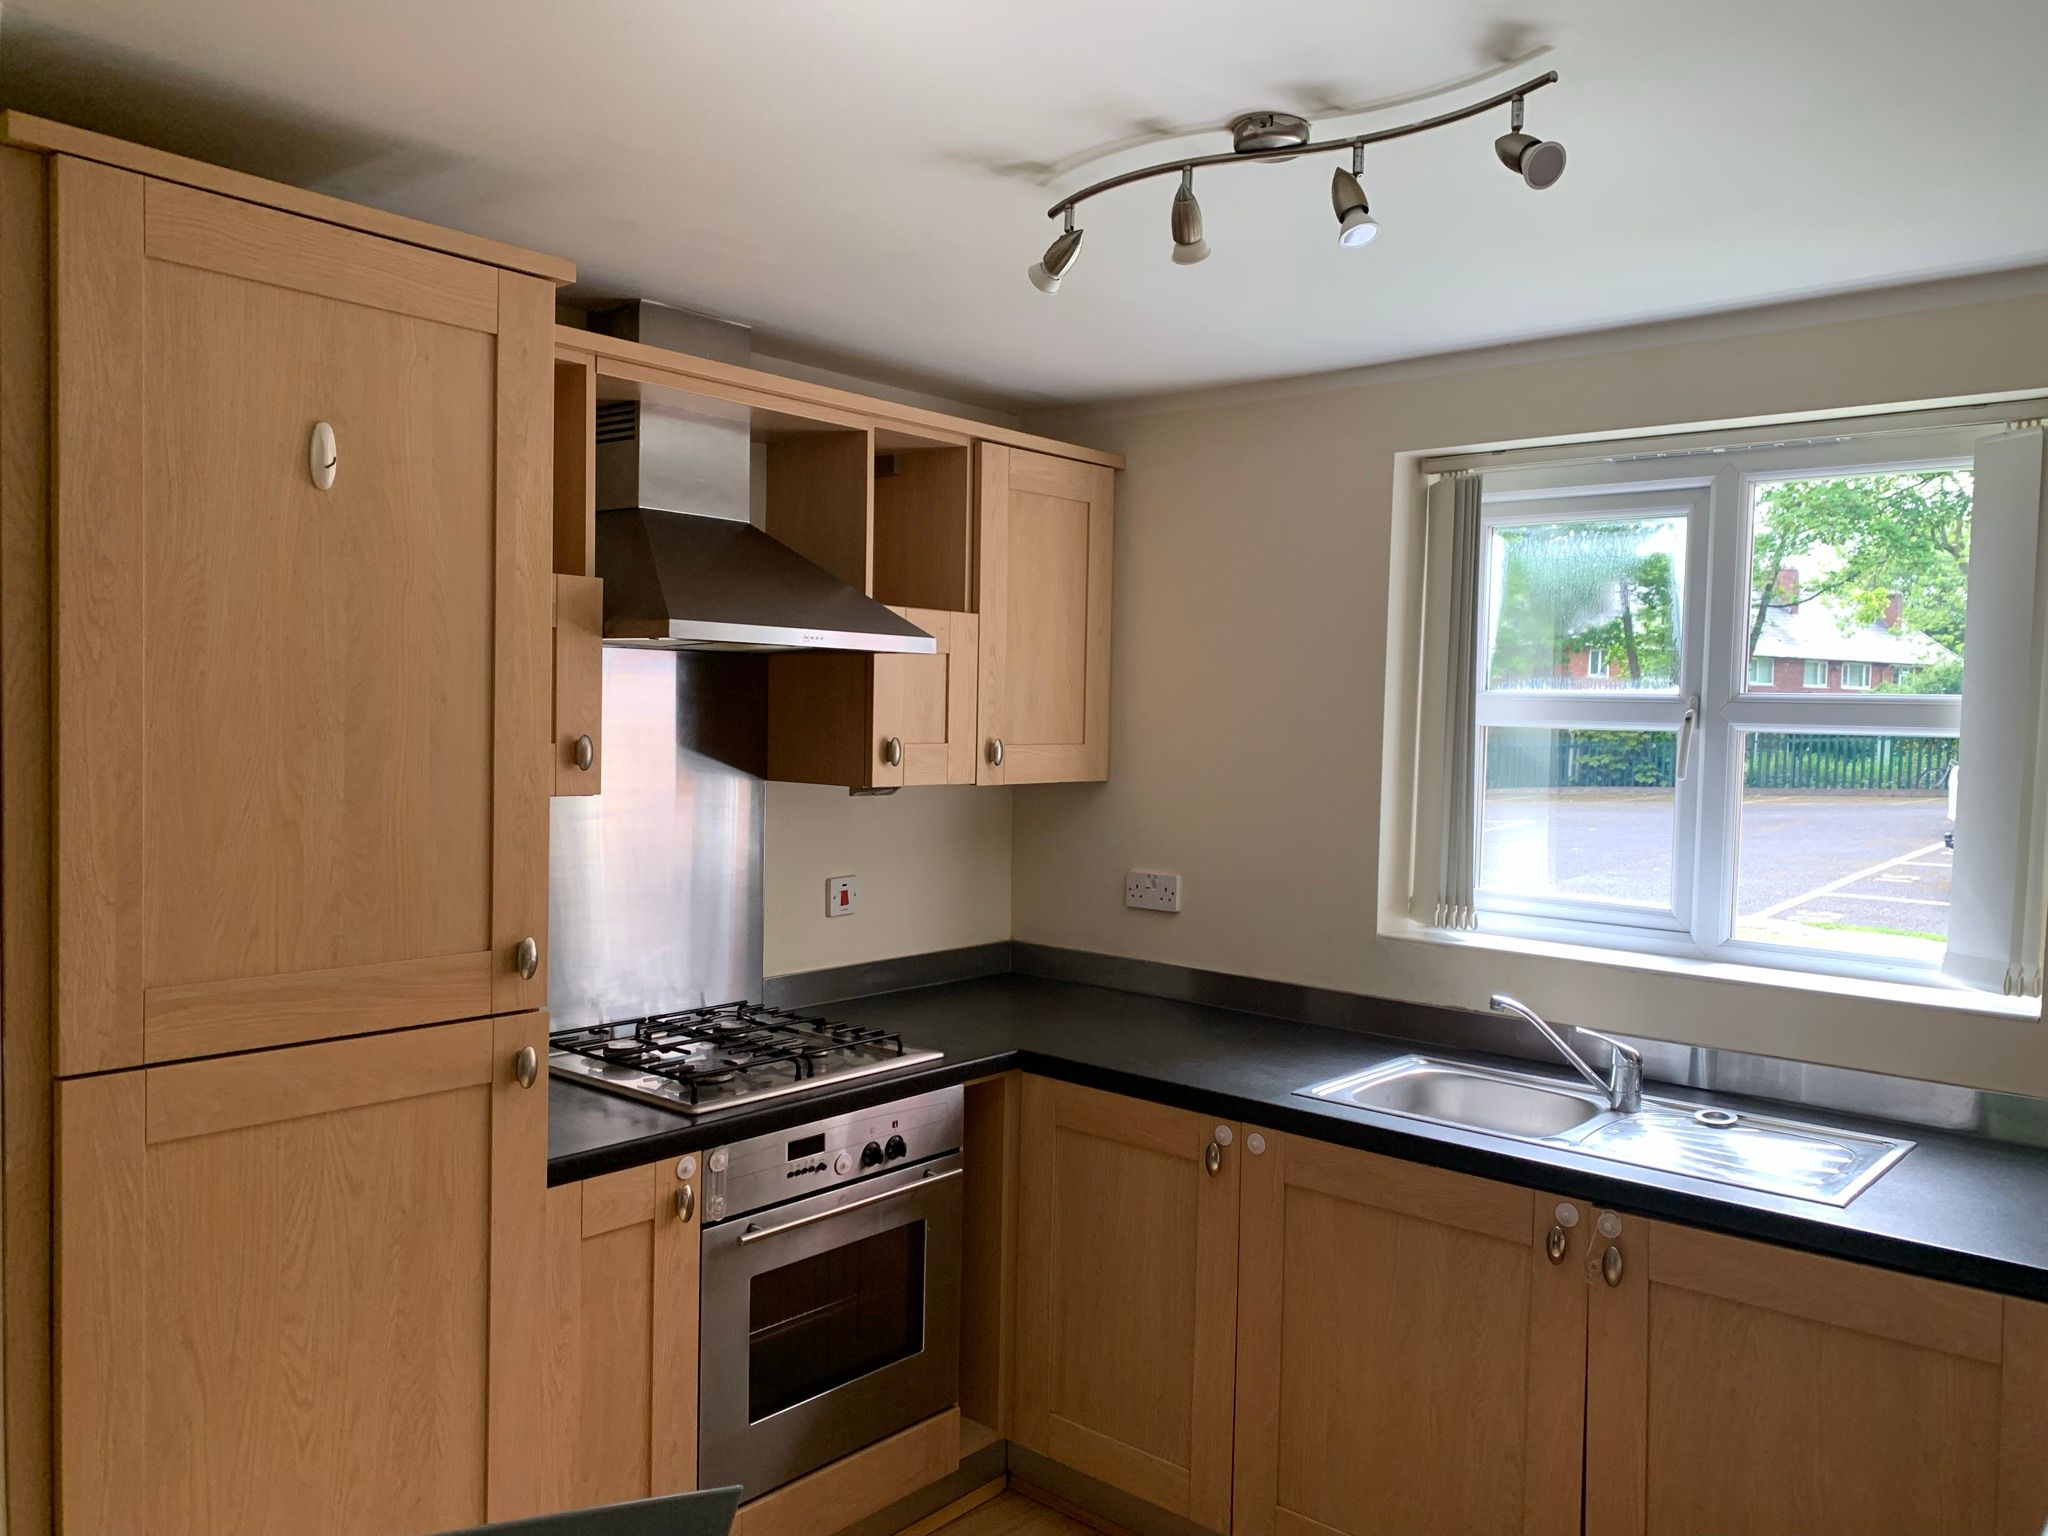 Image 1 of 3 of Kitchen/Lounge, on Accommodation Comprising for .